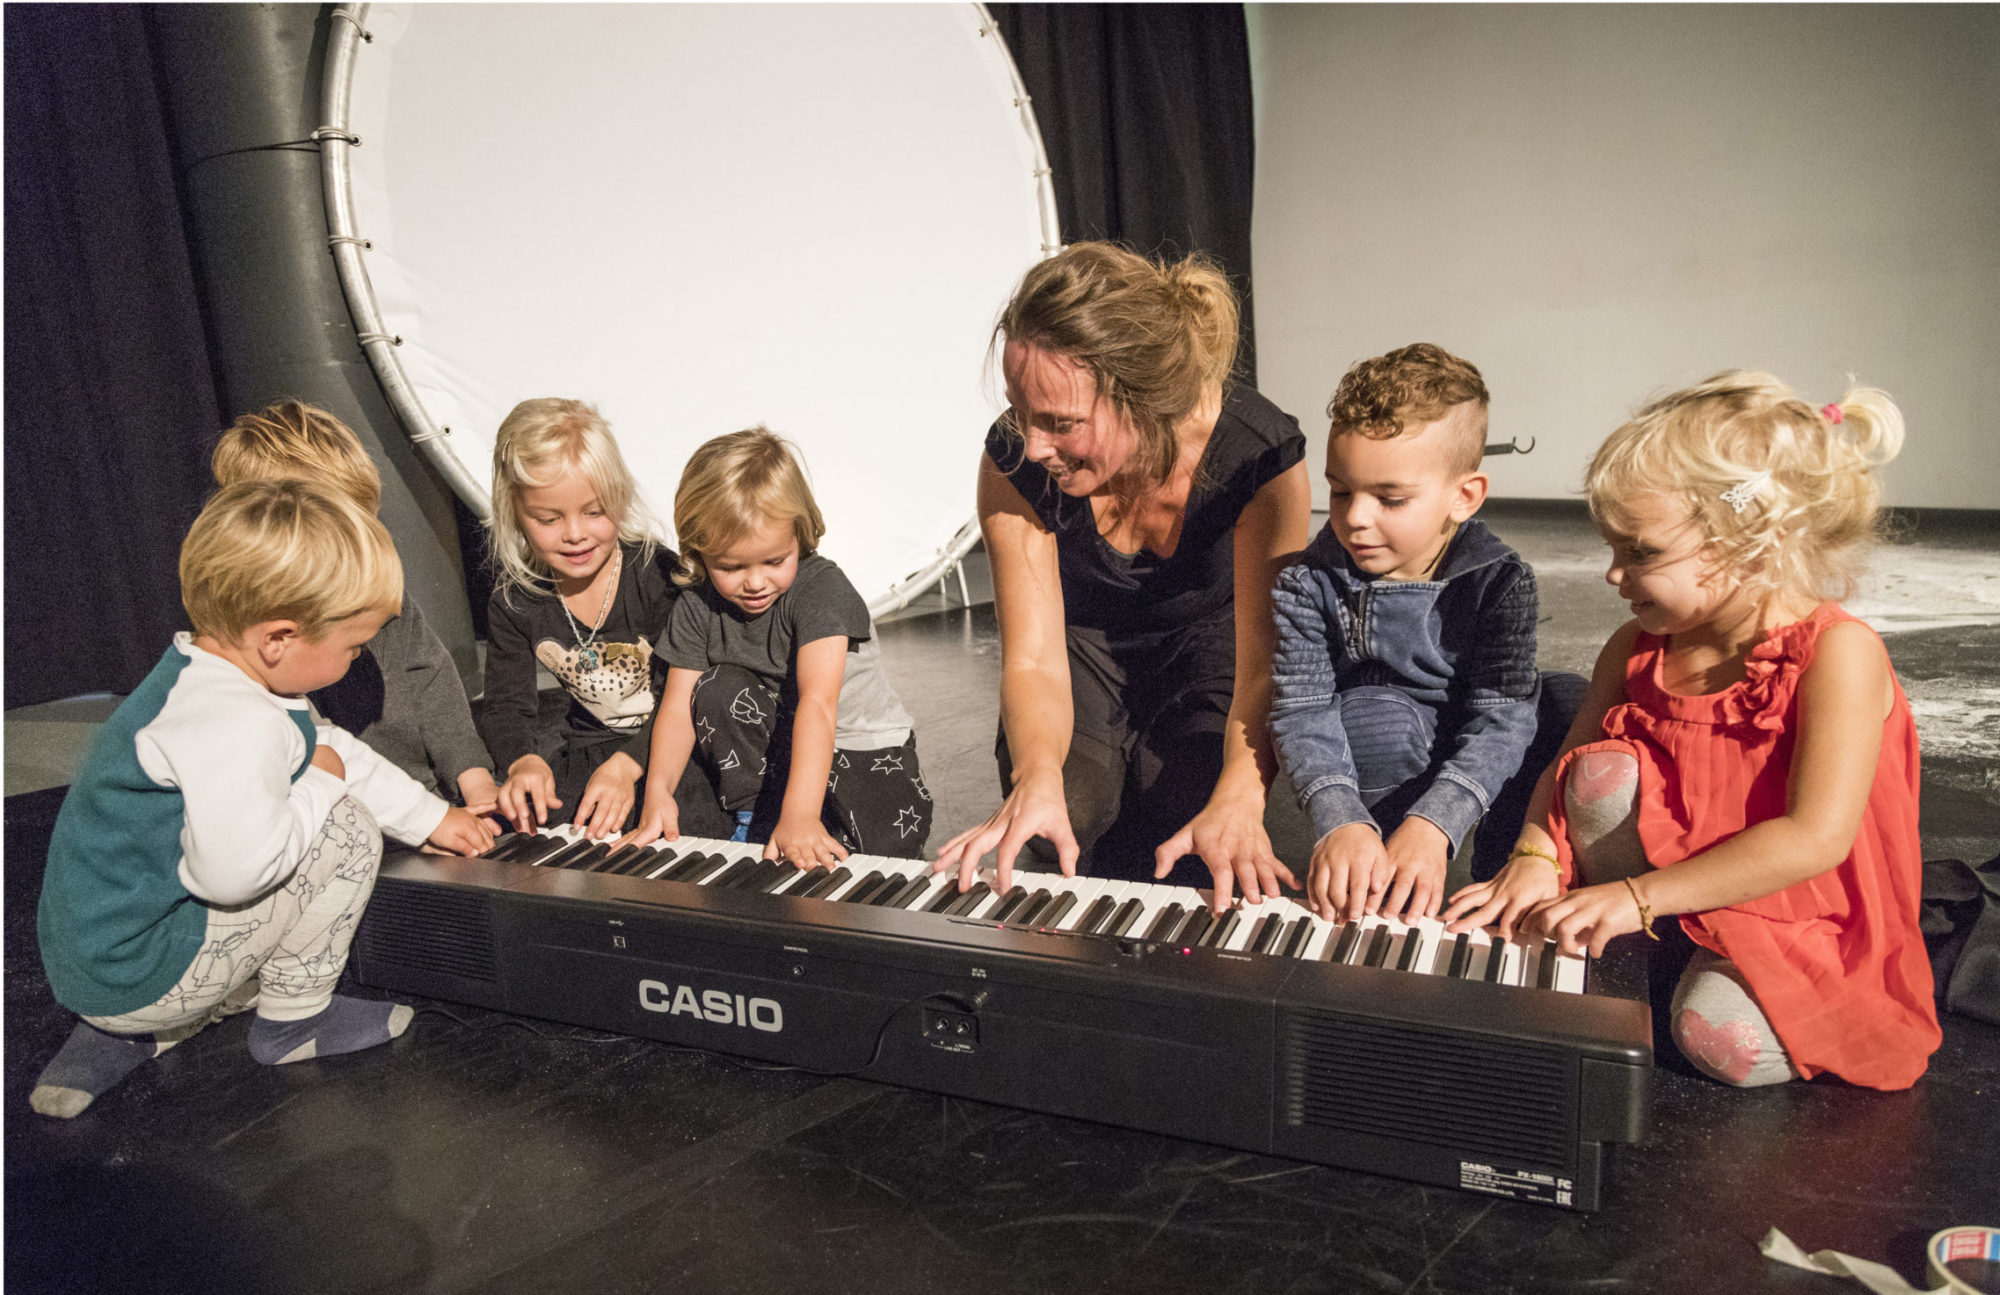 Stichting Le Fay Theaterproducties